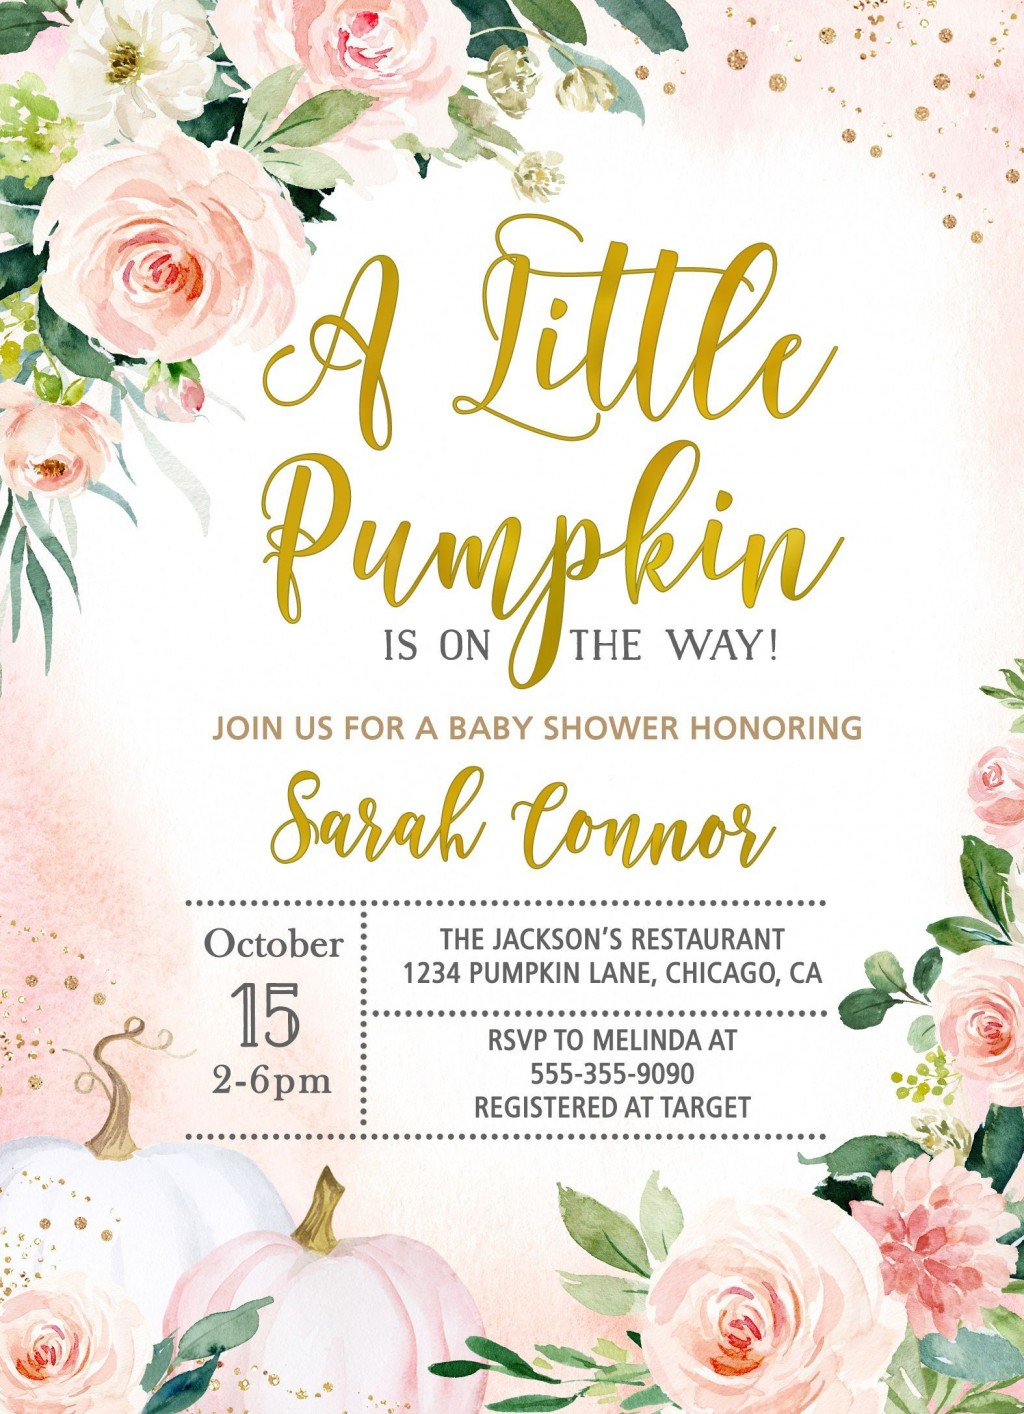 004 Marvelou Baby Shower Invitation Girl Pumpkin High Def  Pink LittleLarge